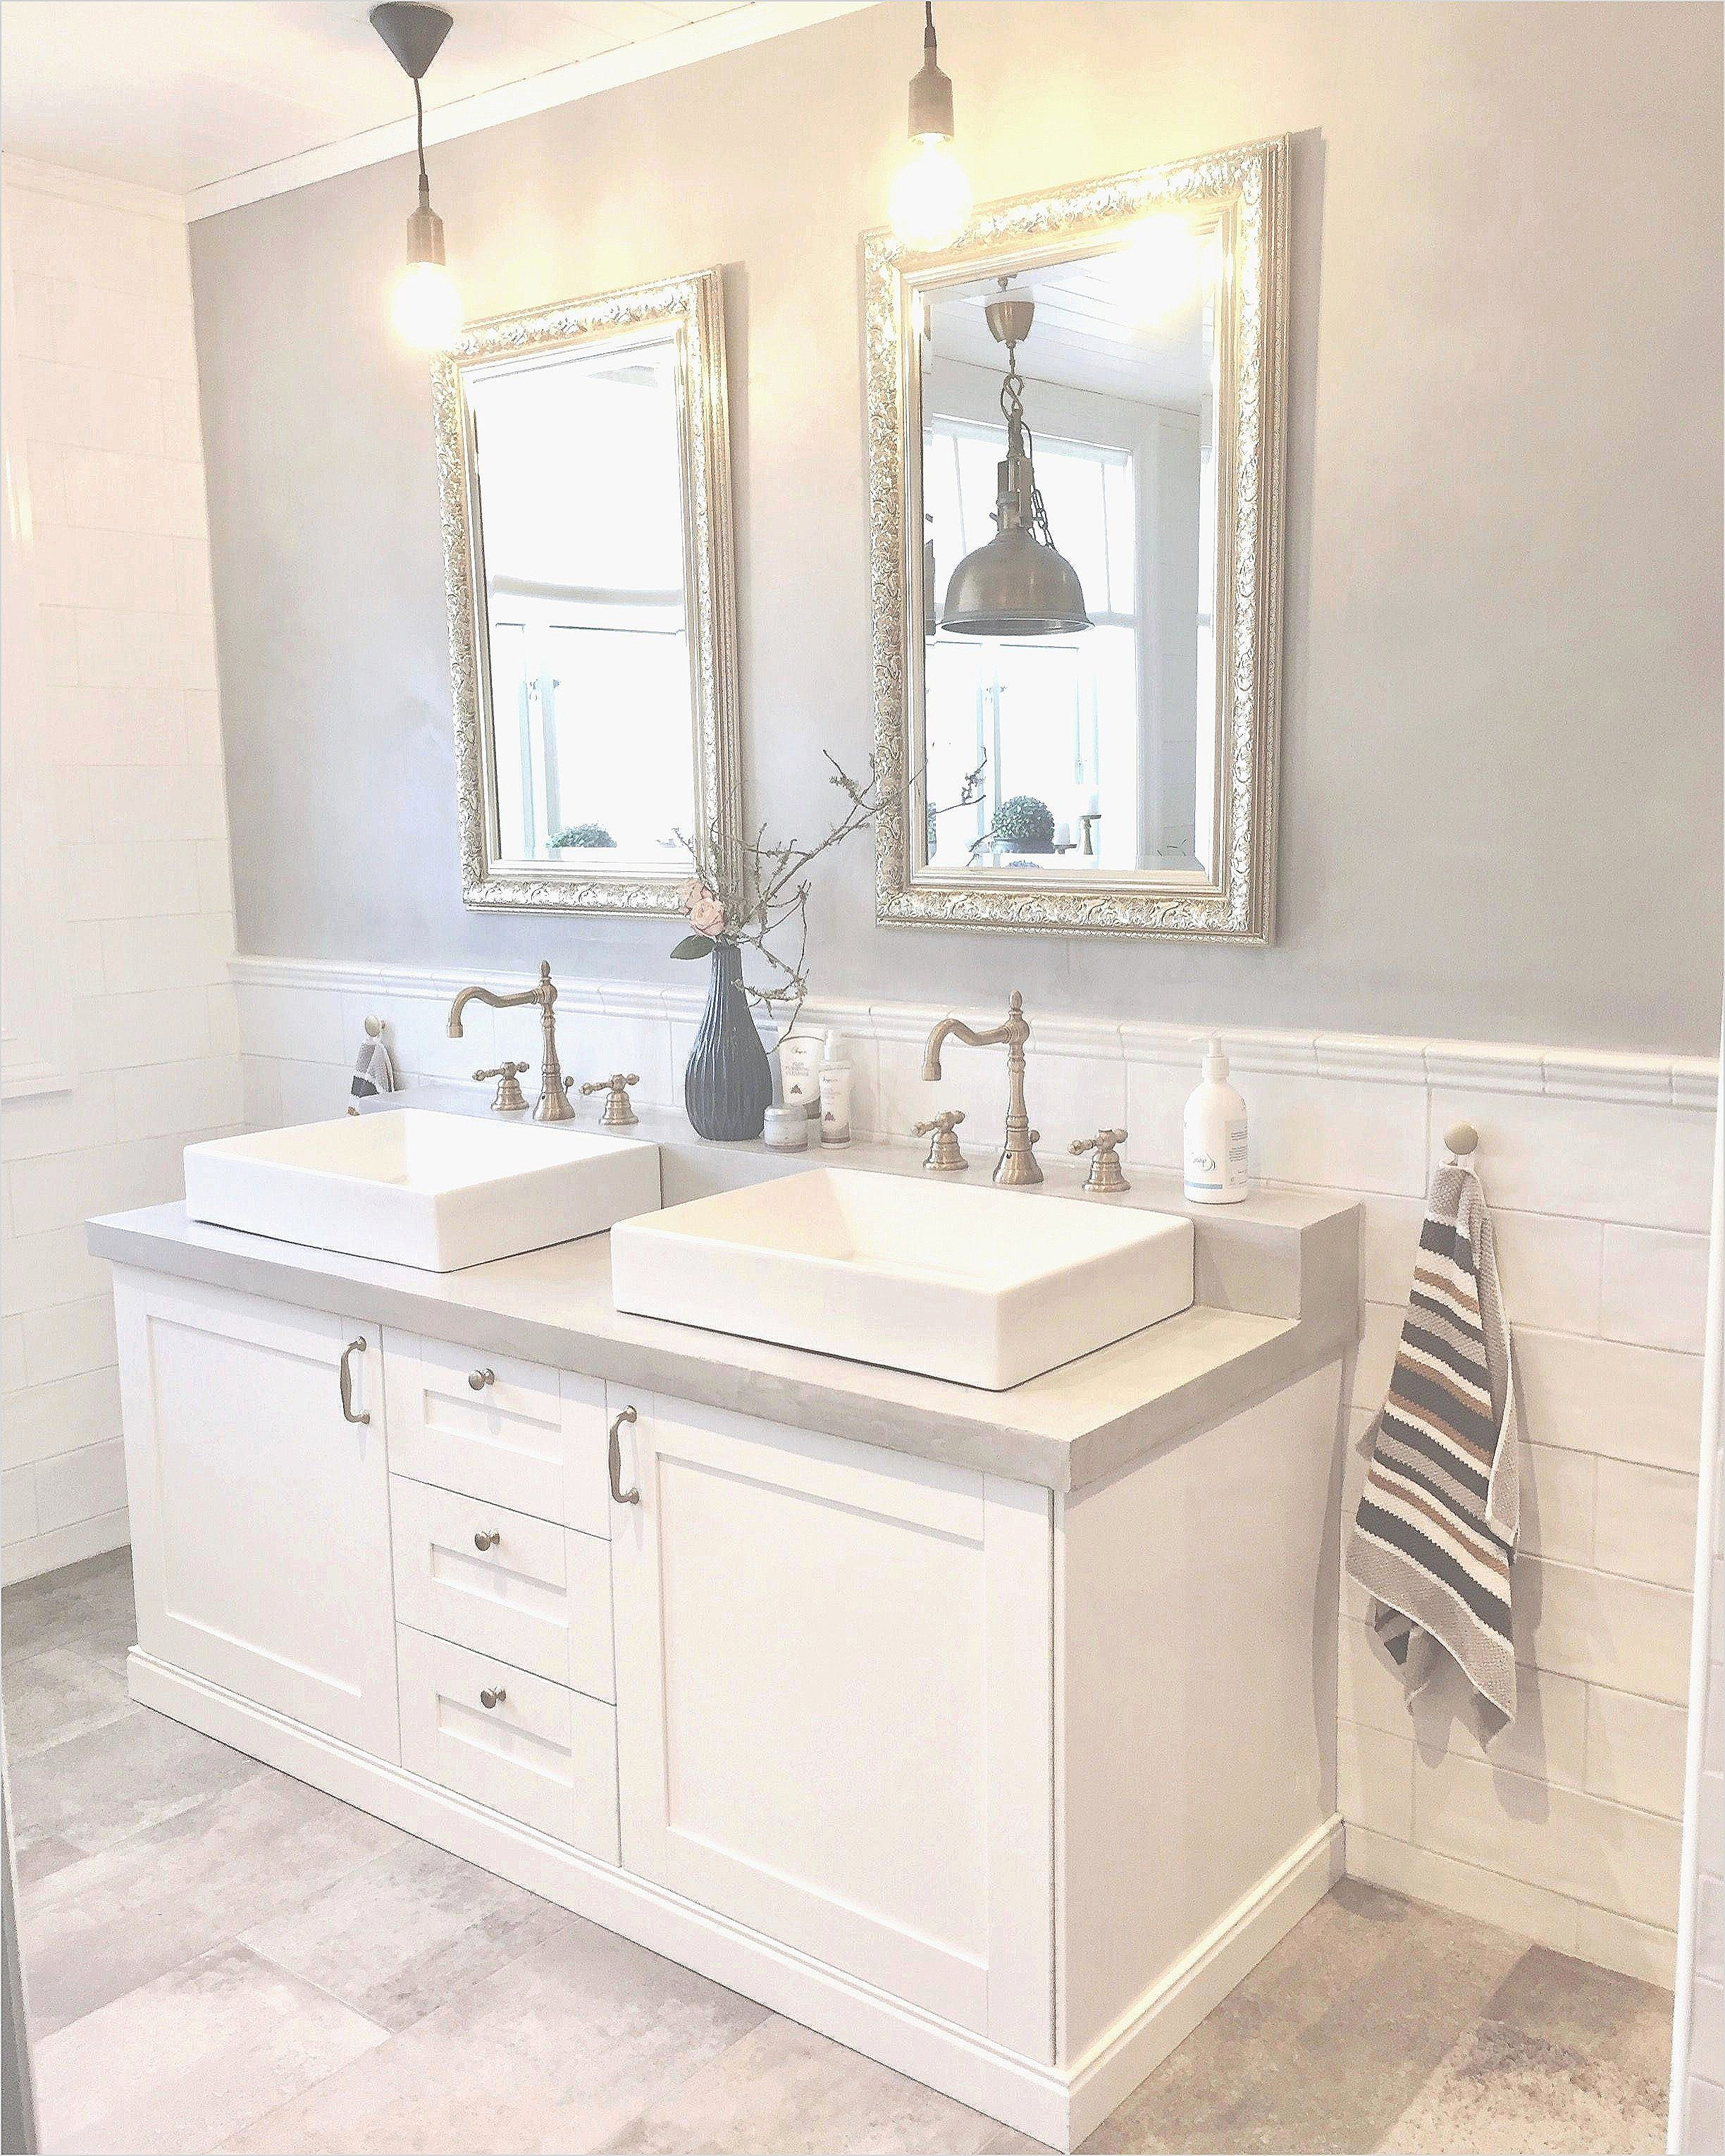 Home Depot Design Ideas: Awesome Bathroom Design In Small Space In 2020